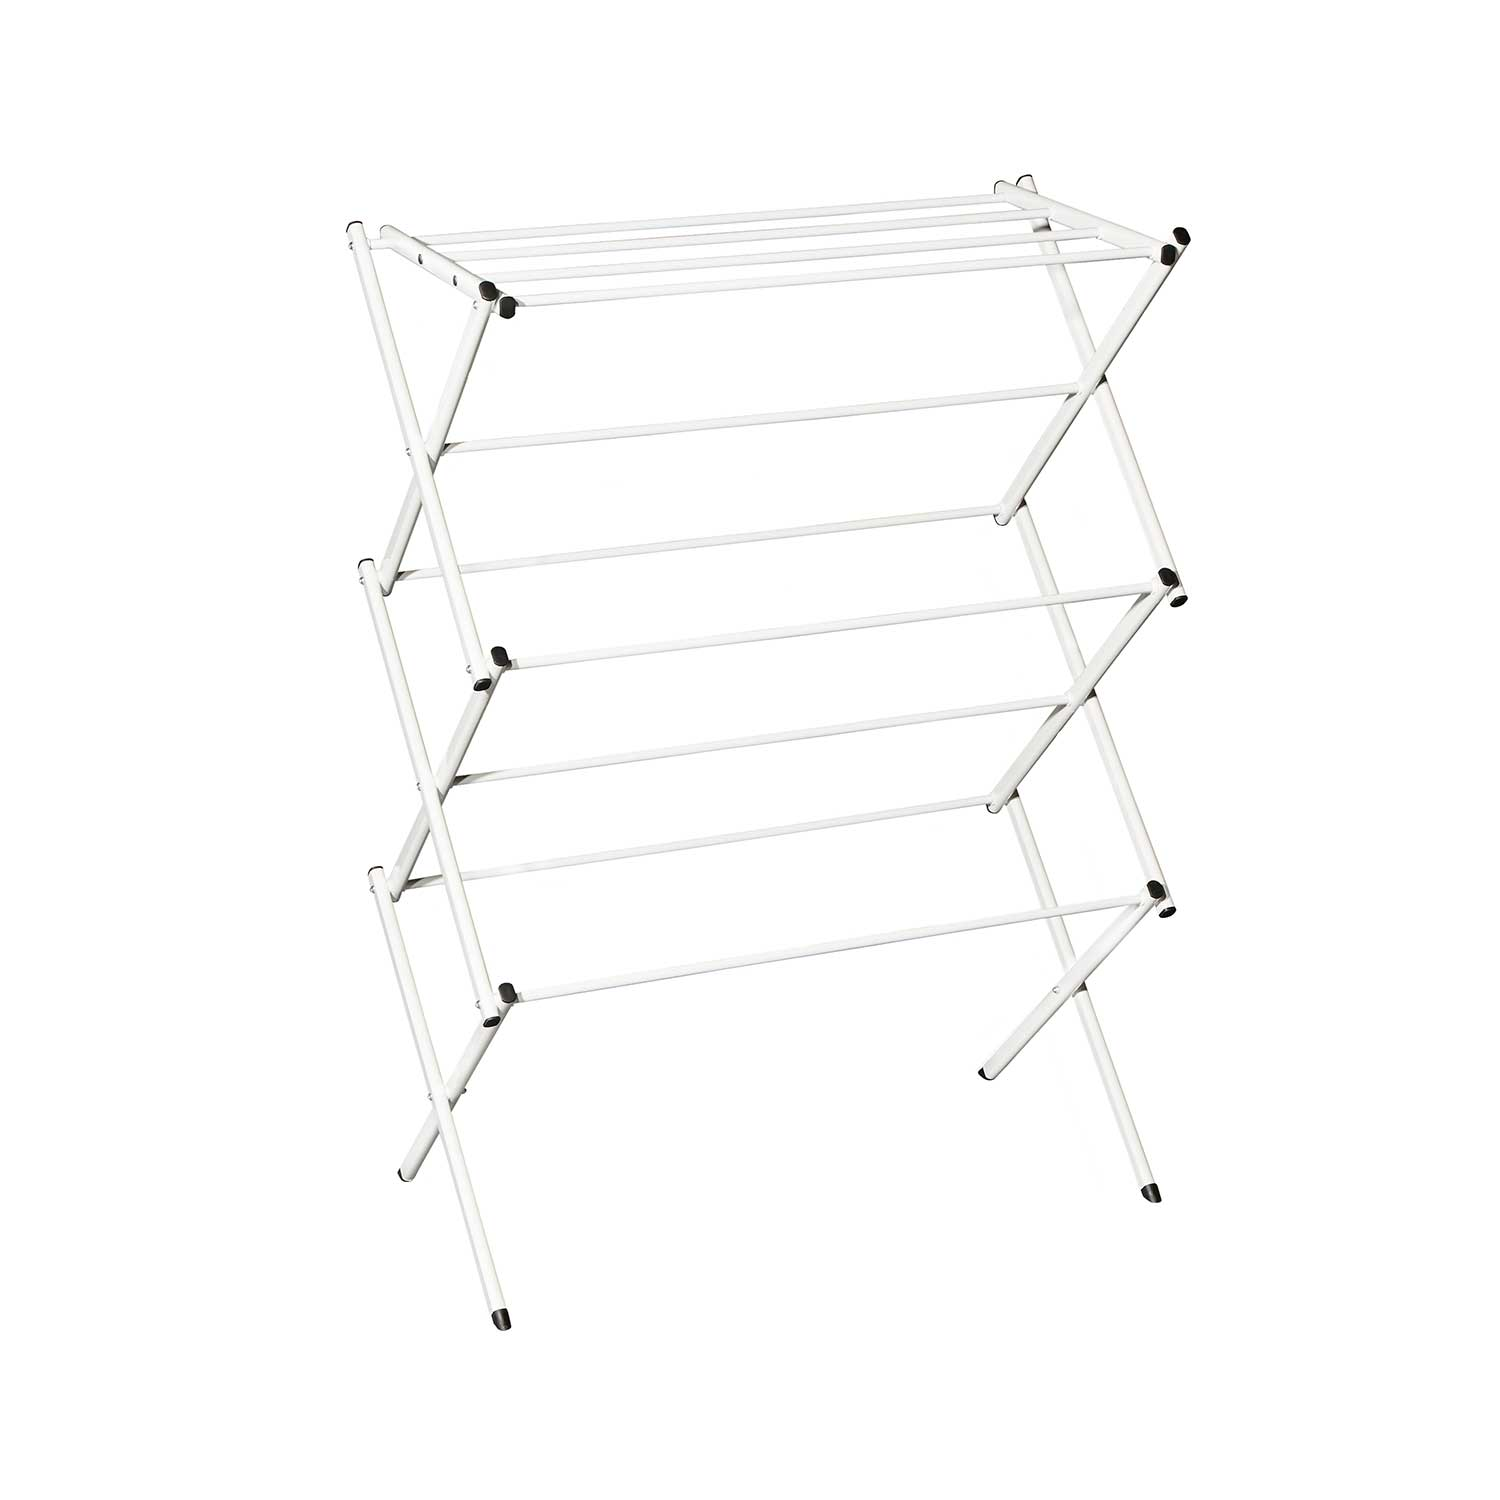 Accordion Laundry Drying Rack (83110)